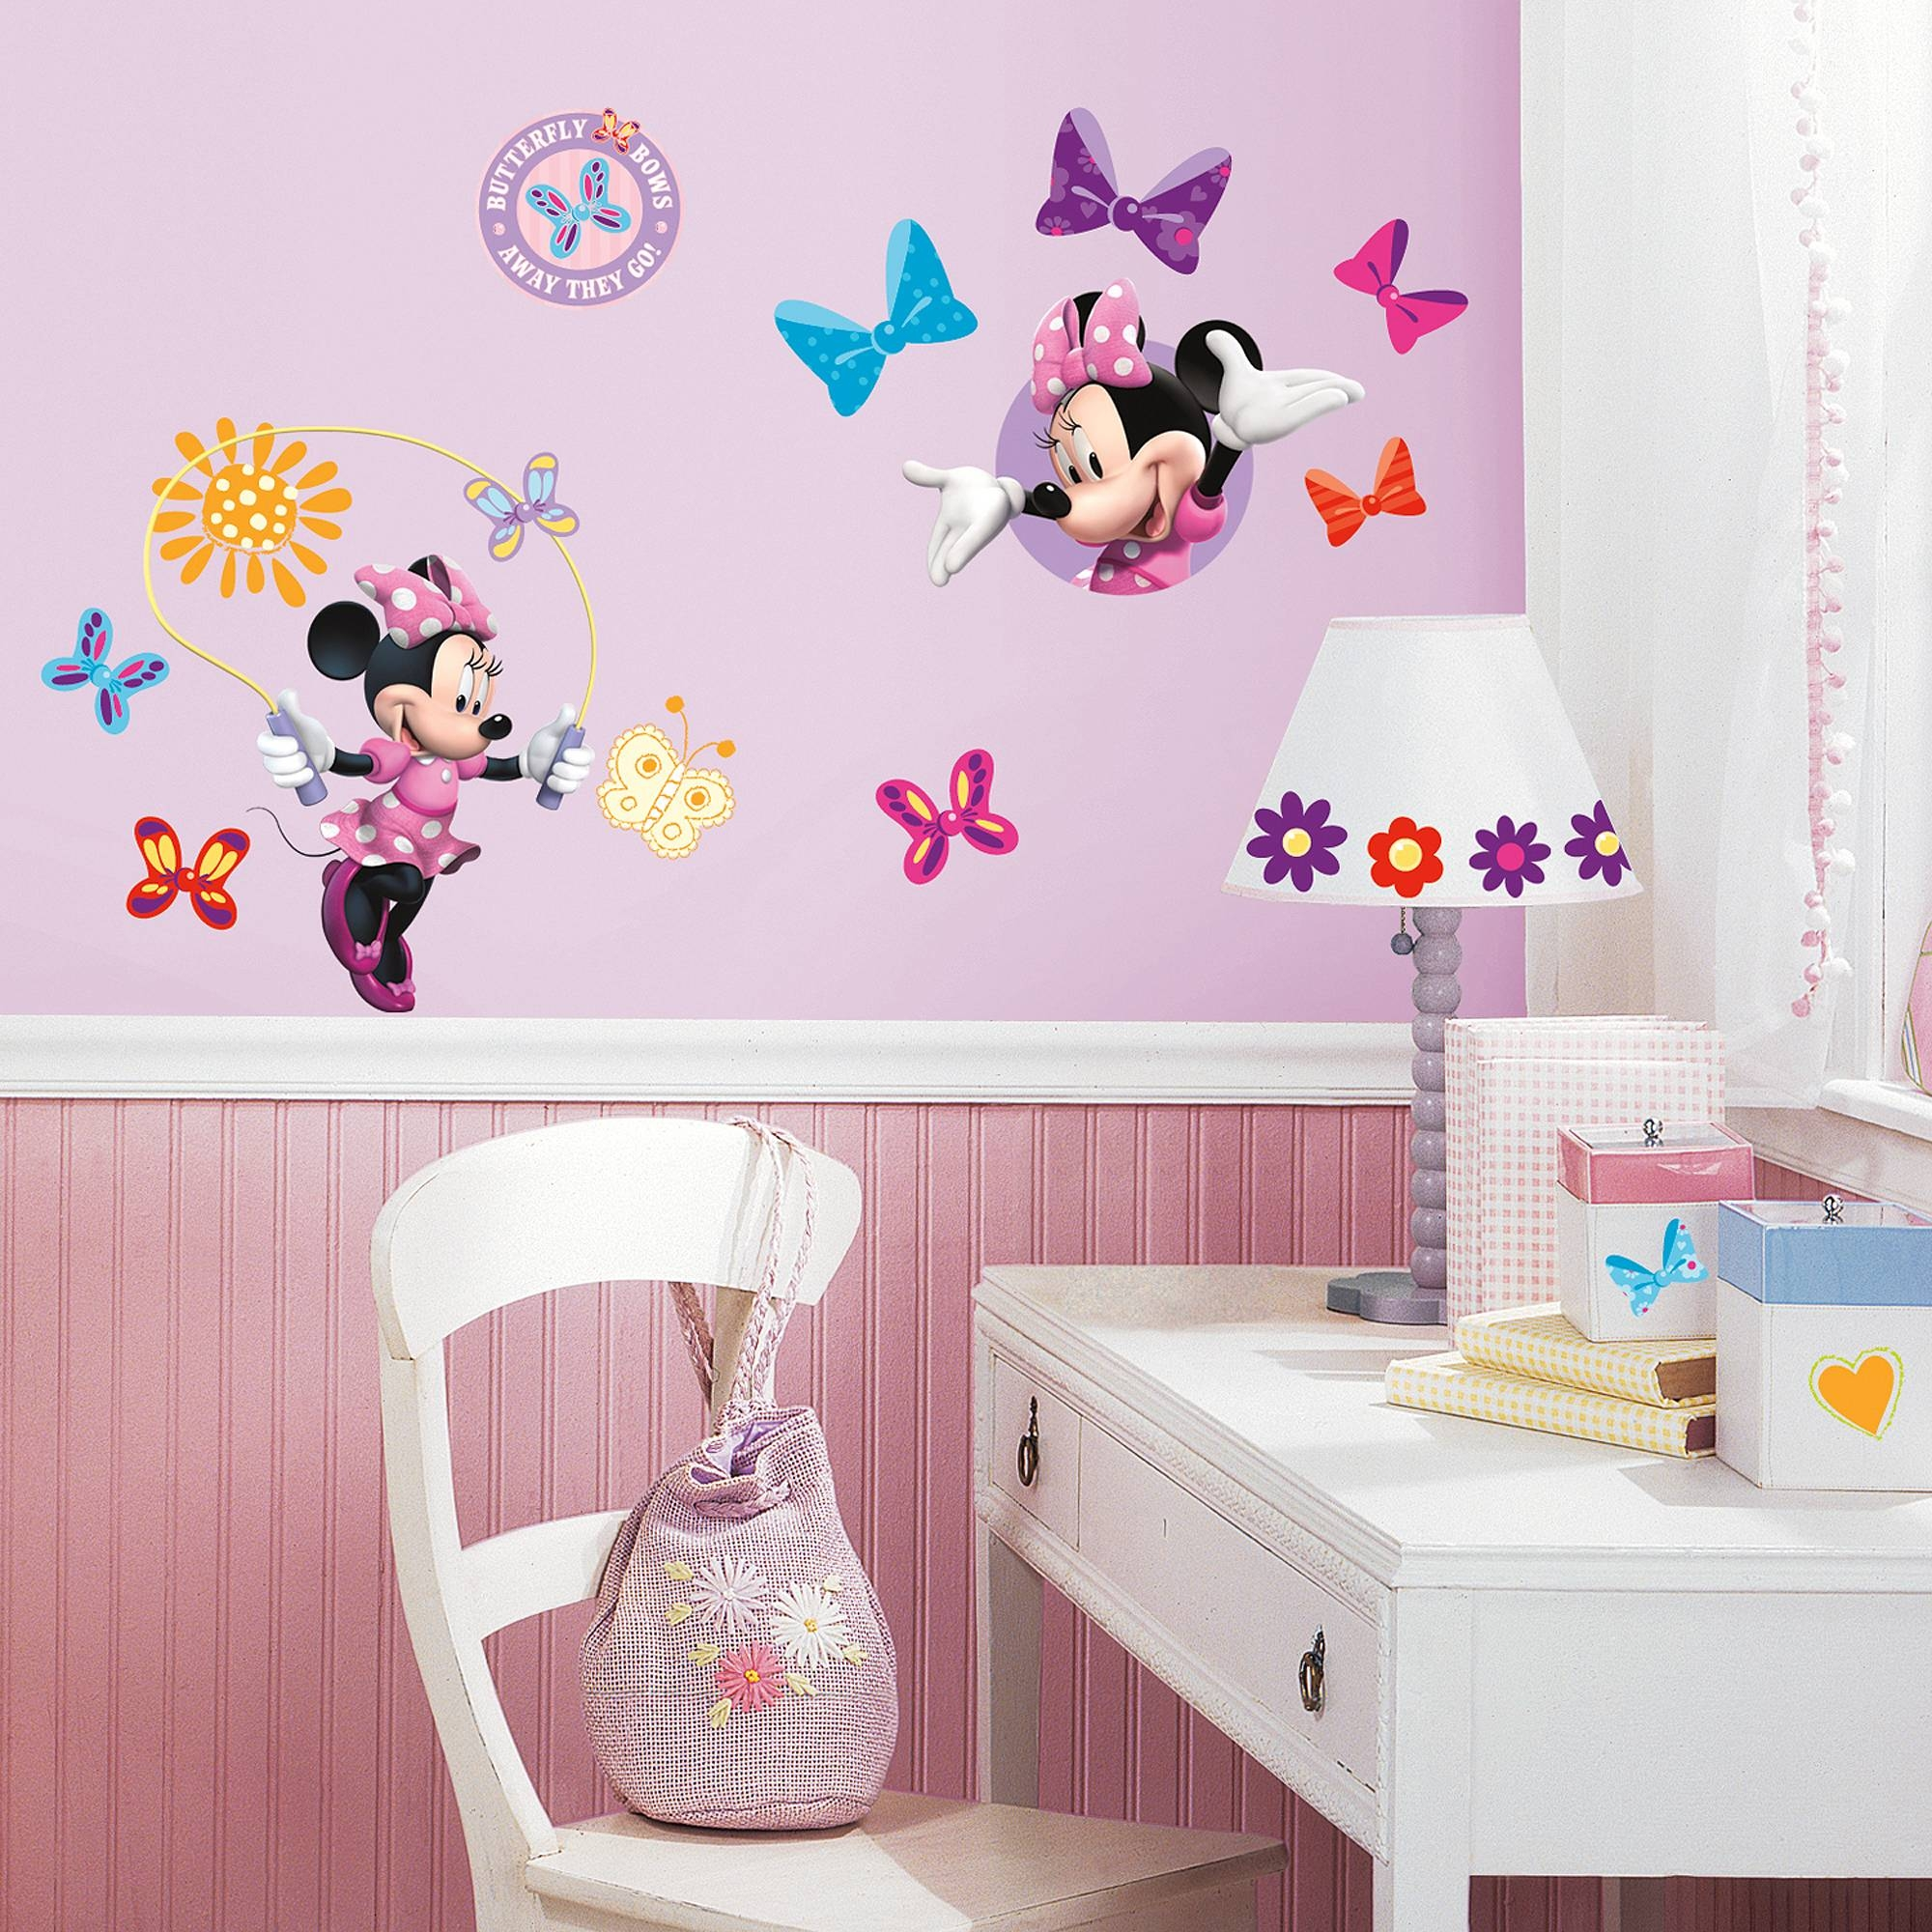 Wall Pops Hoot And Hangout Wall Decal Kit – Walmart In Most Recently Released Walmart Wall Stickers (View 20 of 25)